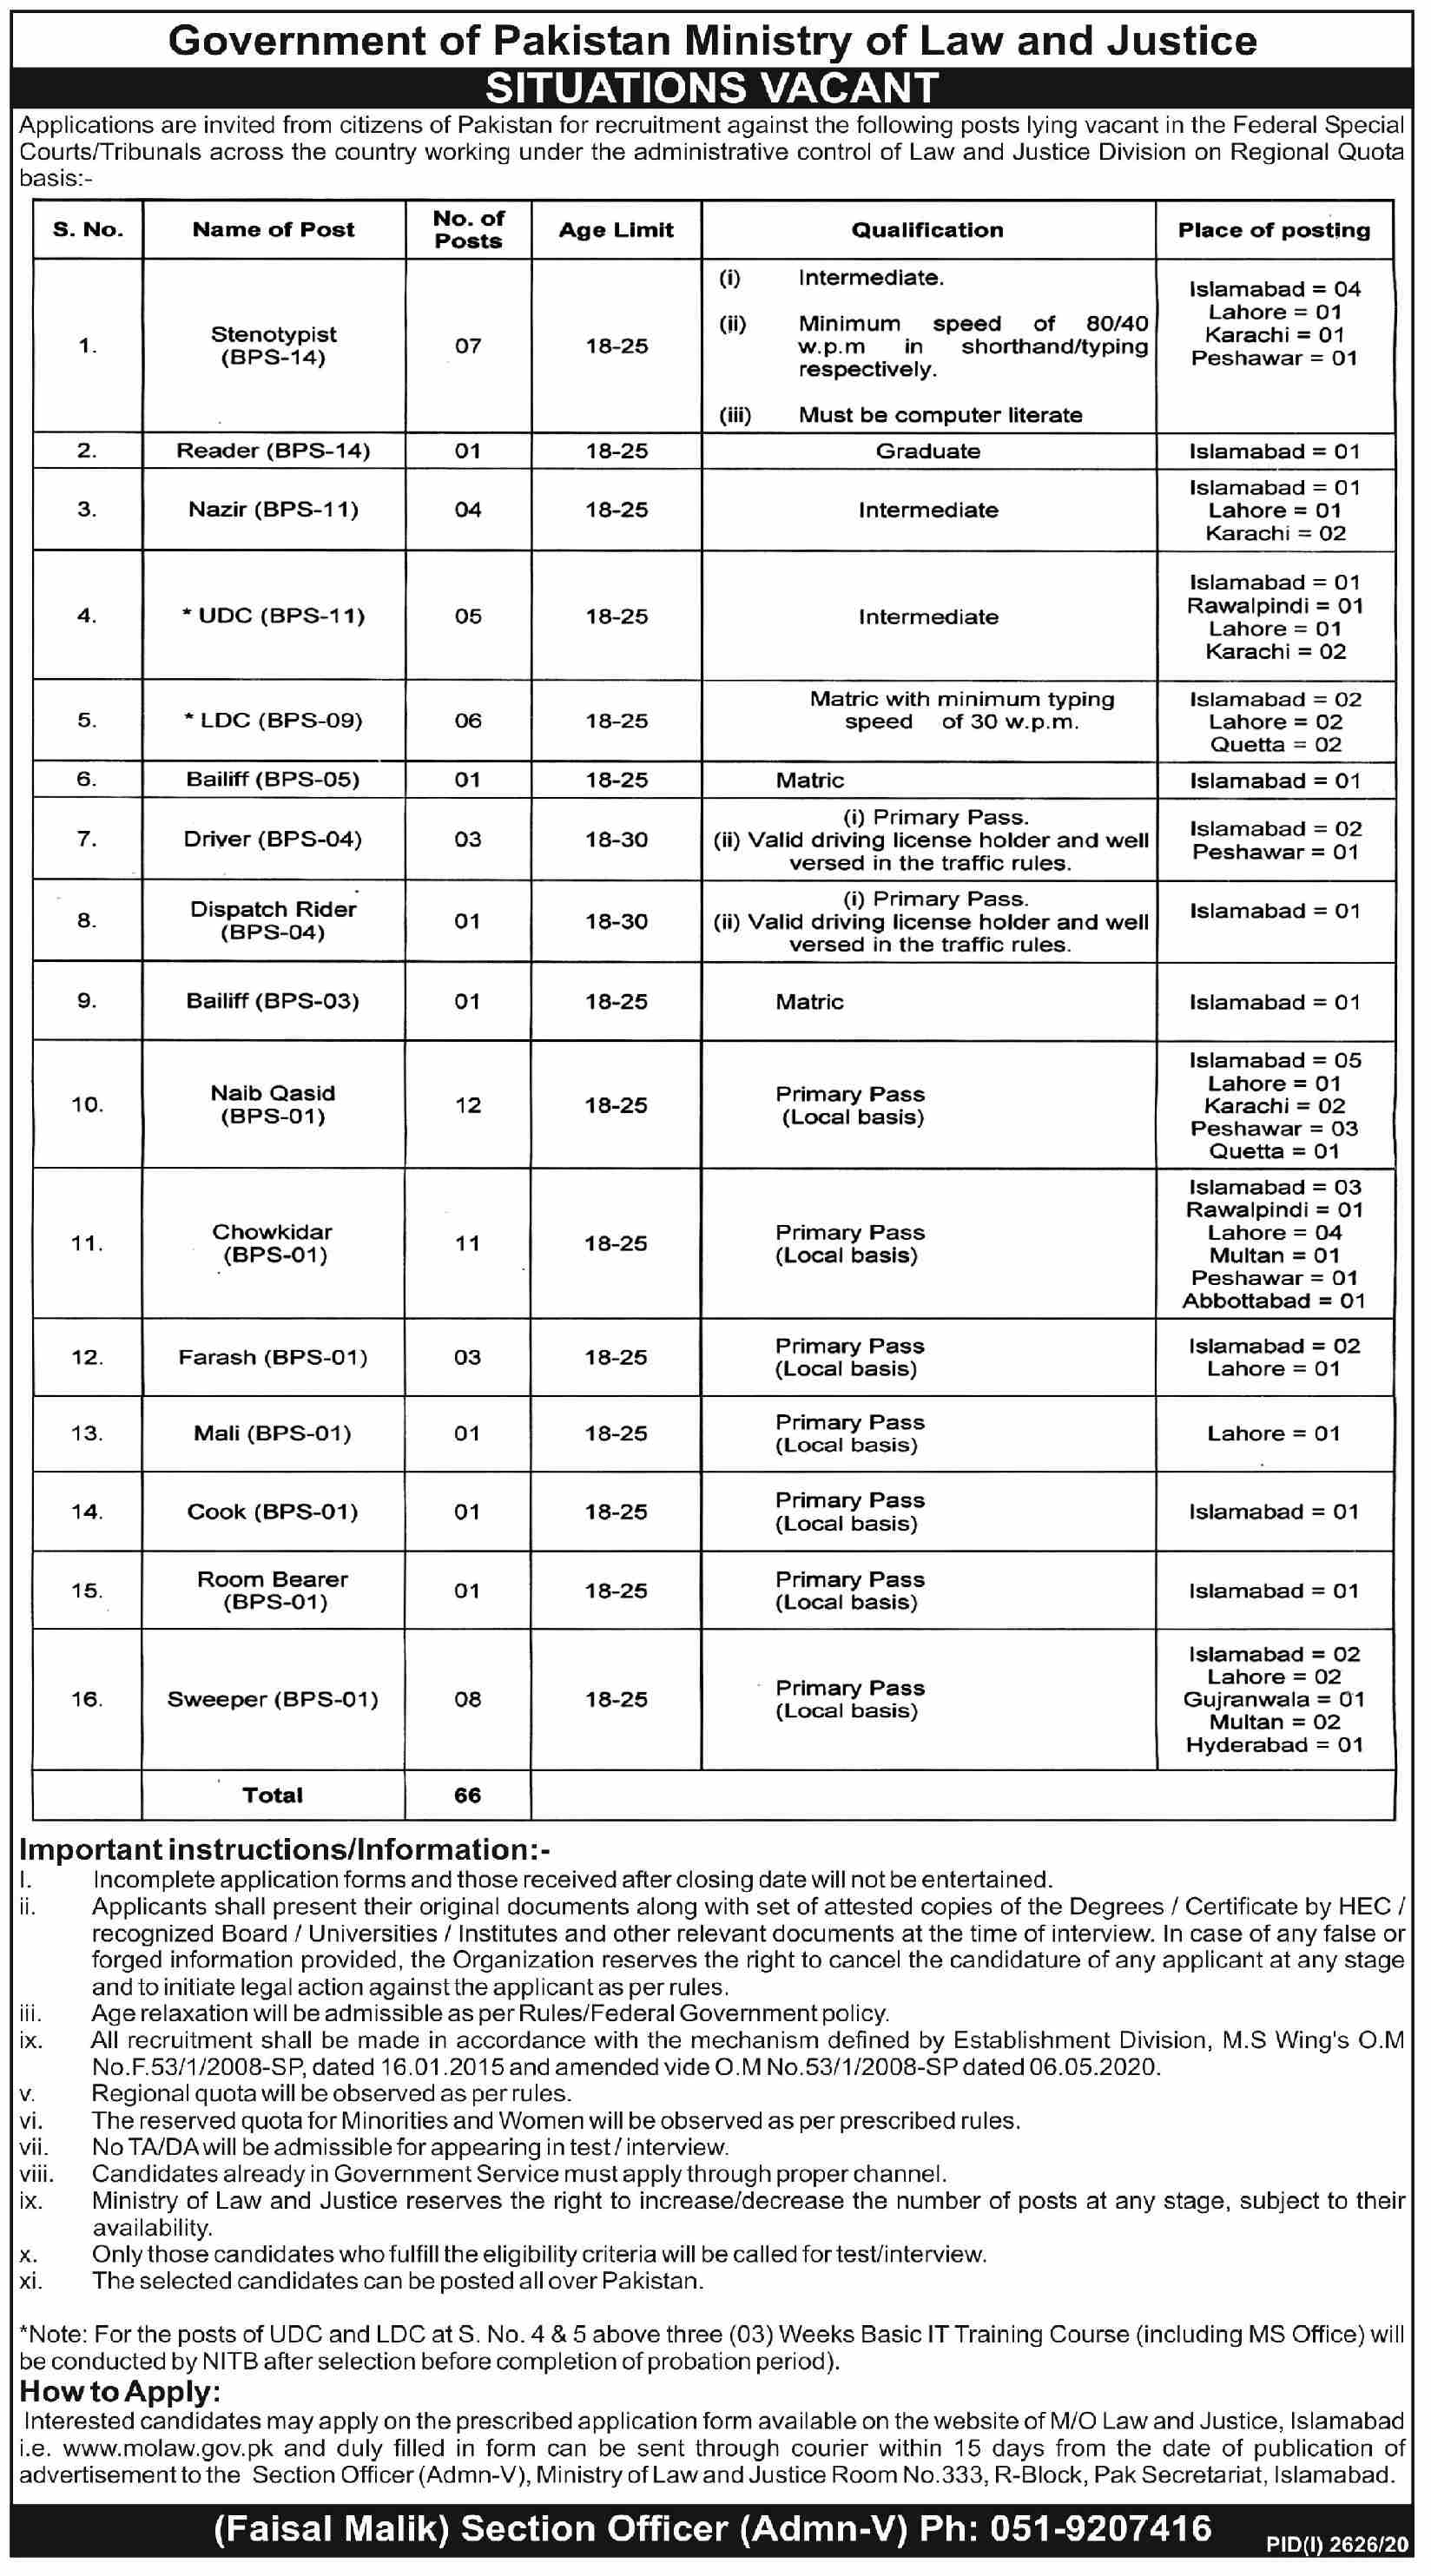 Ministry Of Law & Justice jobs newspaper ad for Chowkidar in Islamabad